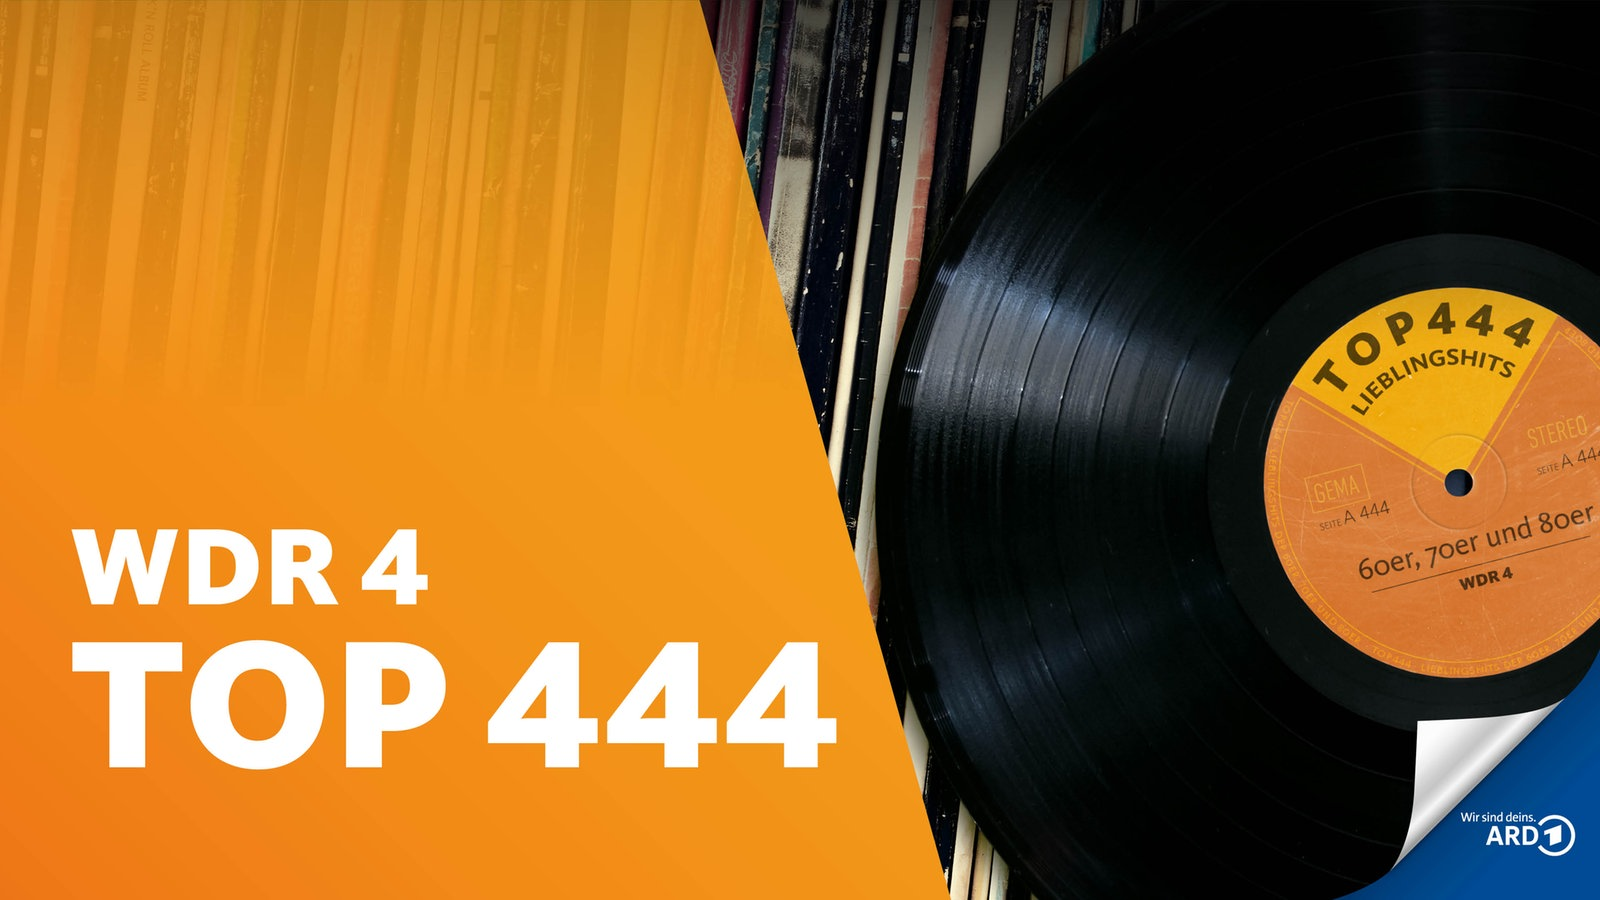 Wdr4 Top 444